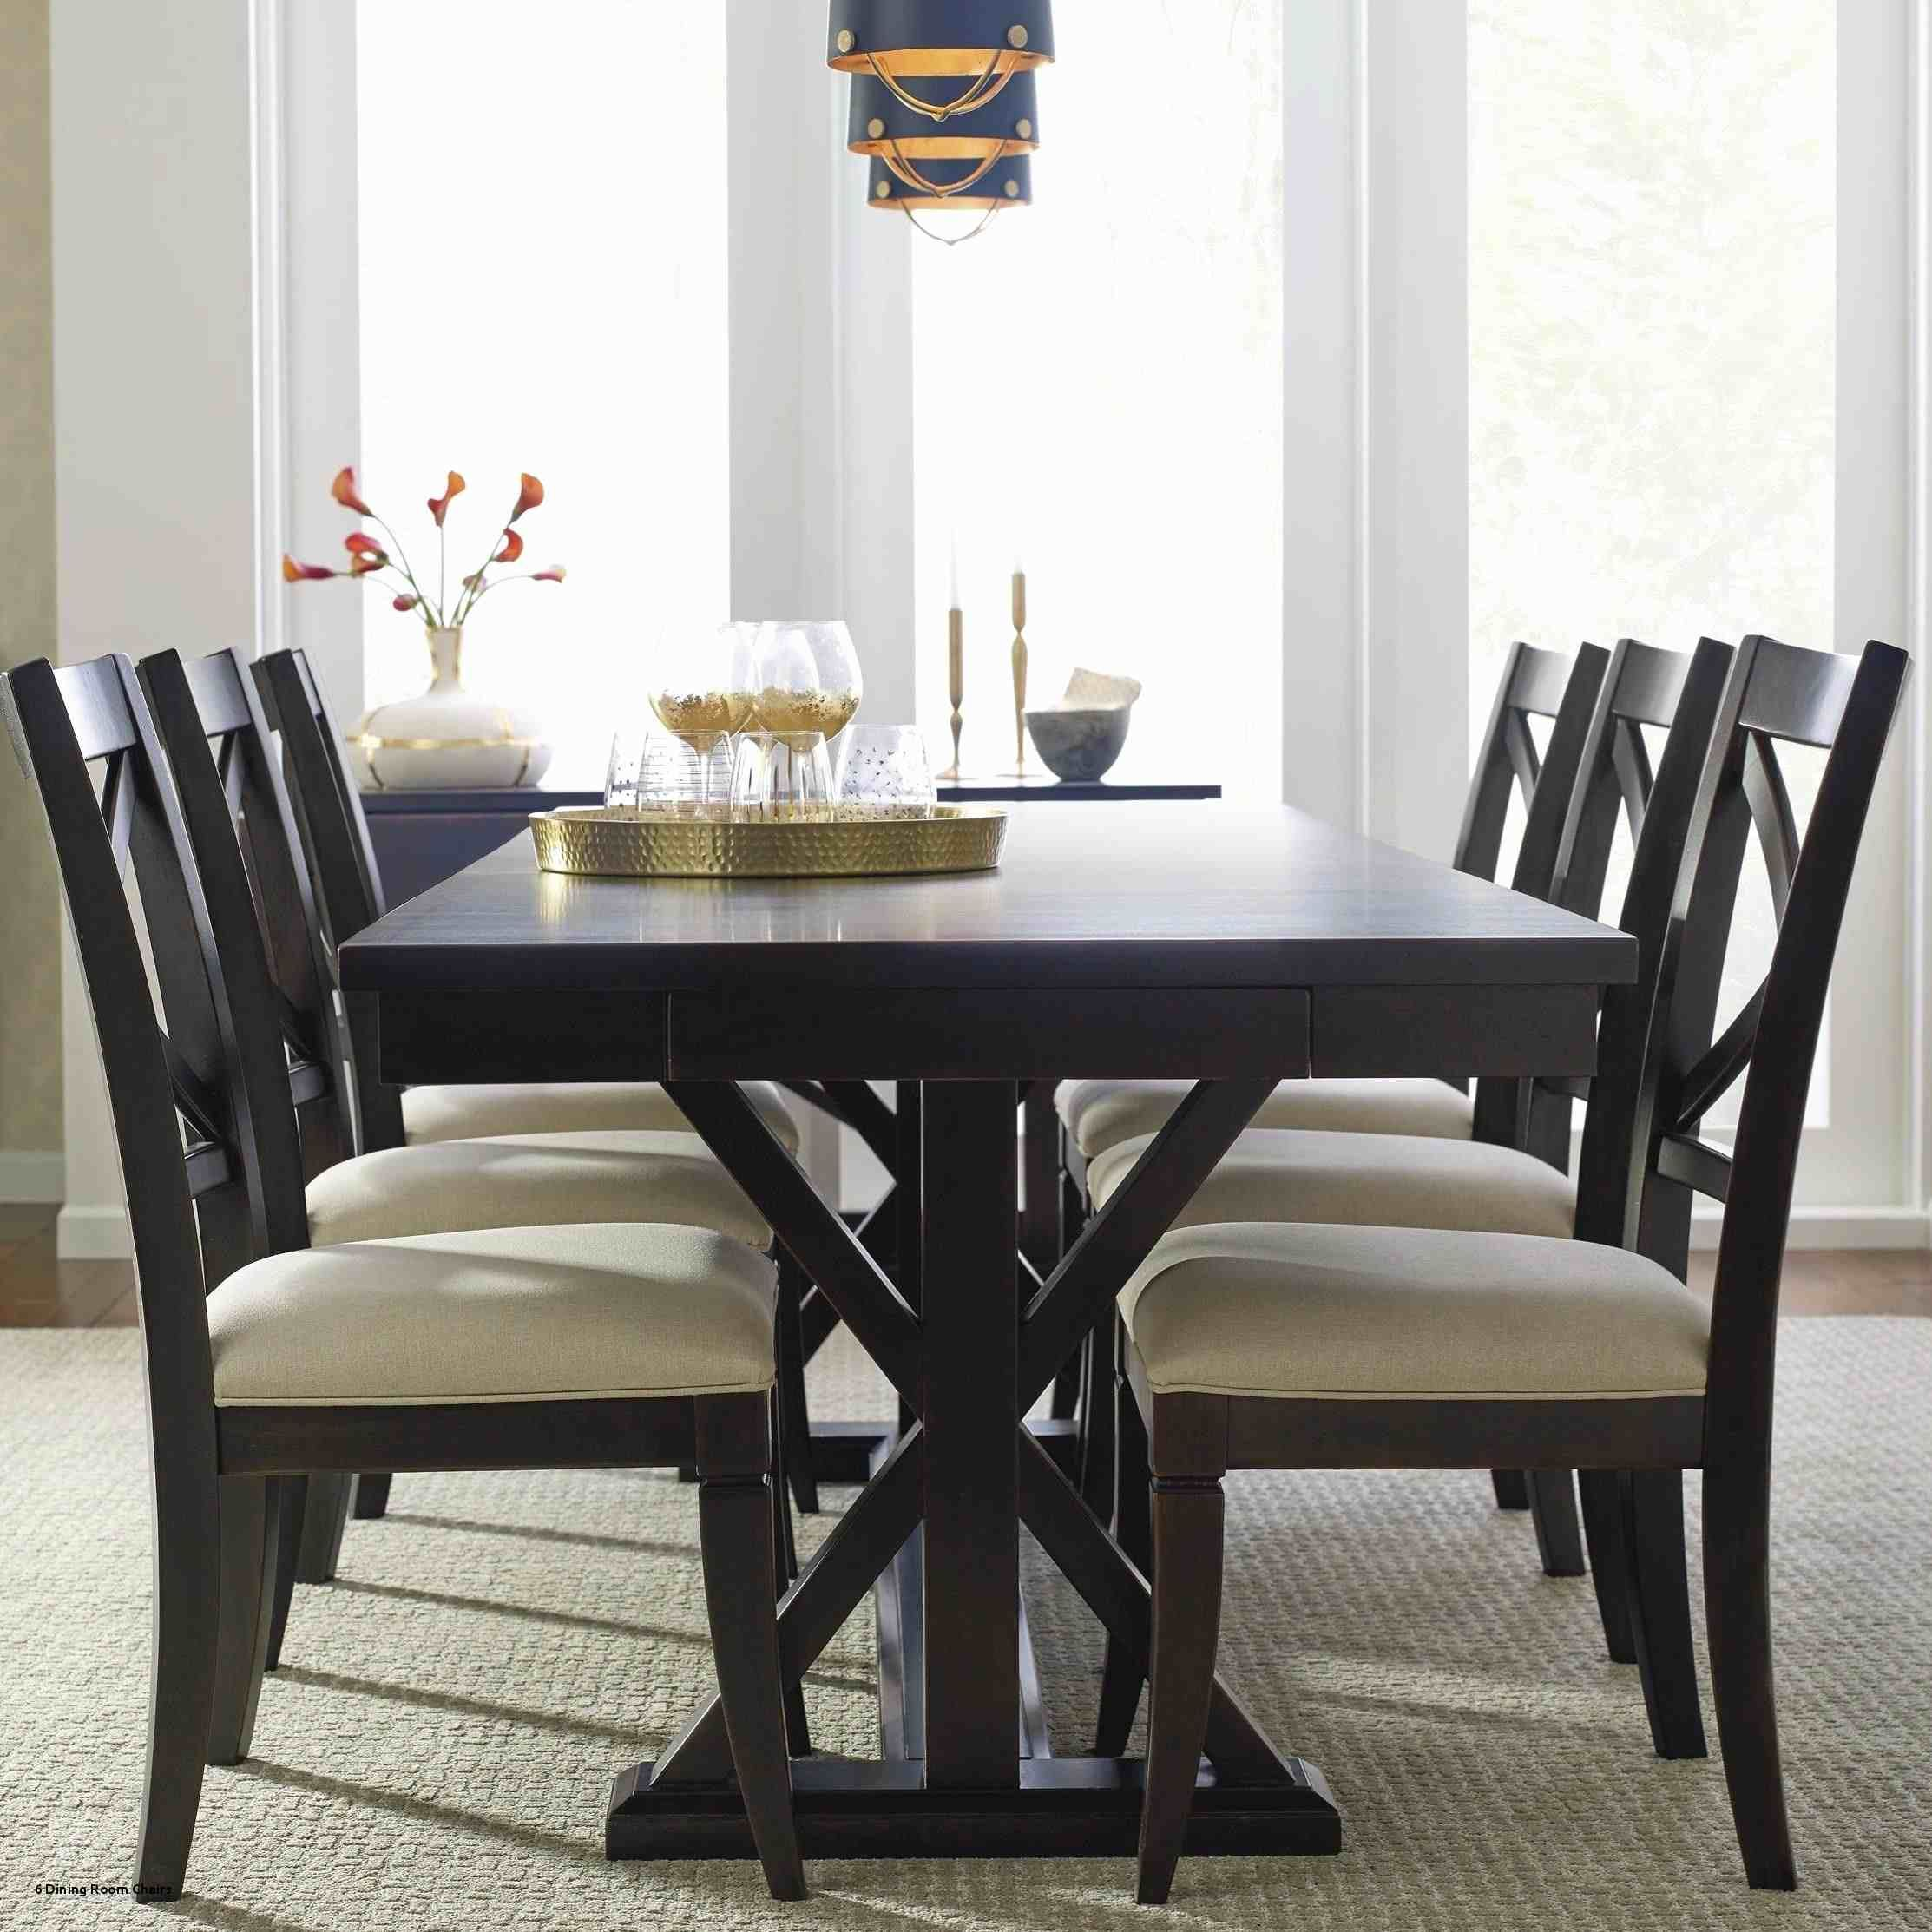 Dining Room Ideas With Black Table Di 2020 Interior Modern